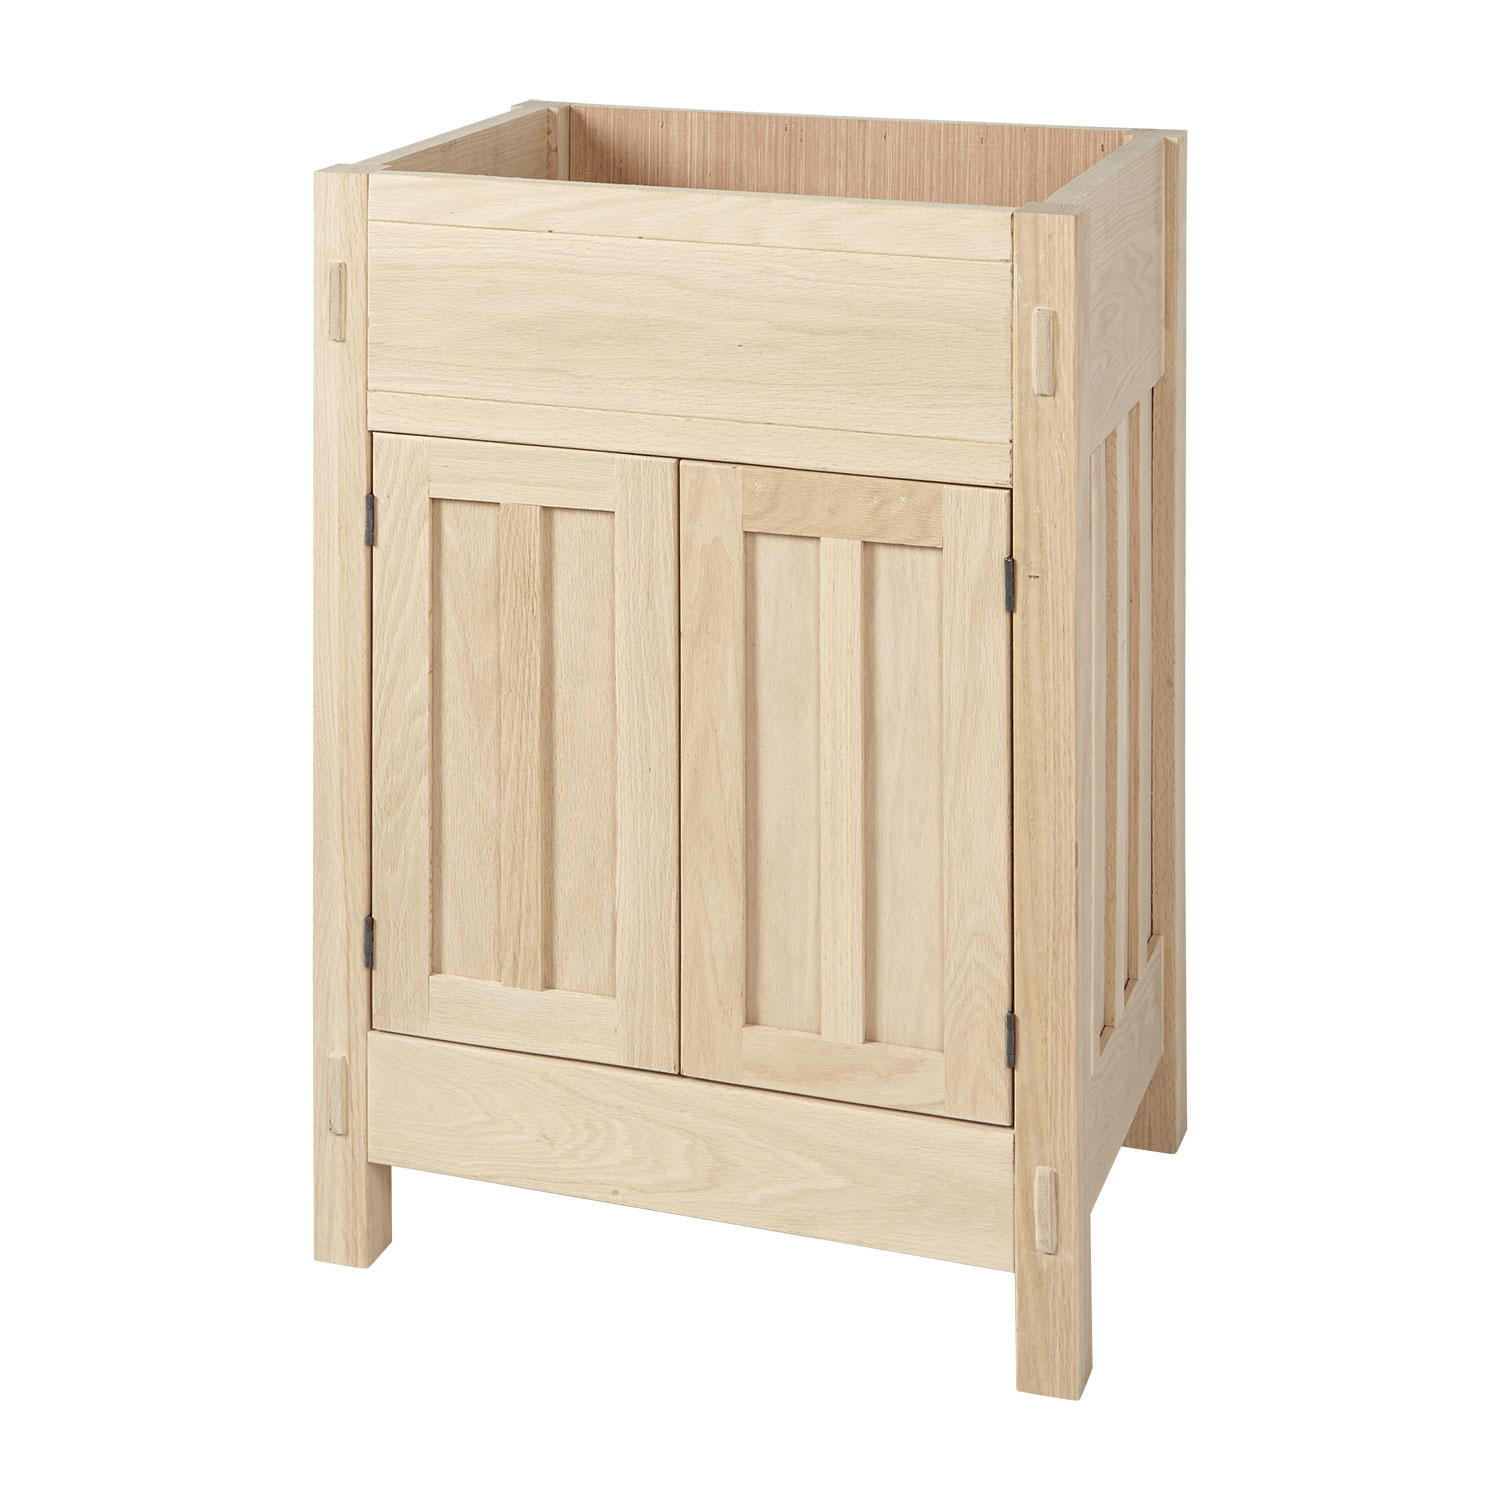 All about bathroom vanity base cabinet unfinished for Unfinished wood bathroom cabinets